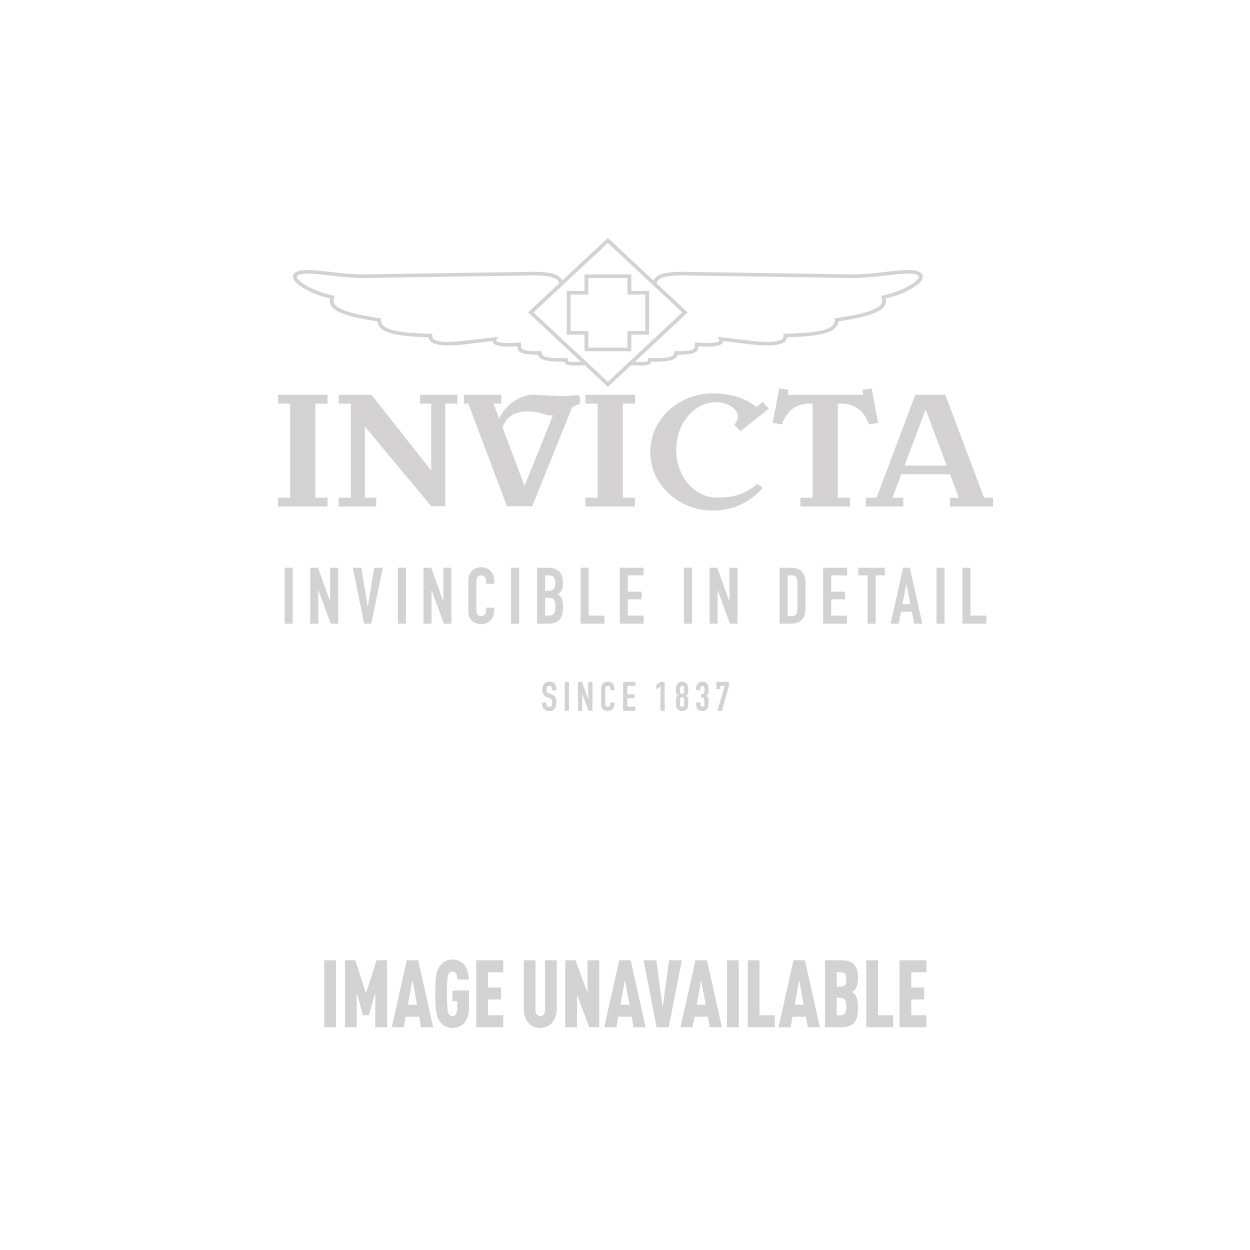 Invicta 3 Slot Impact Case - Model DC3ORG/GLOW